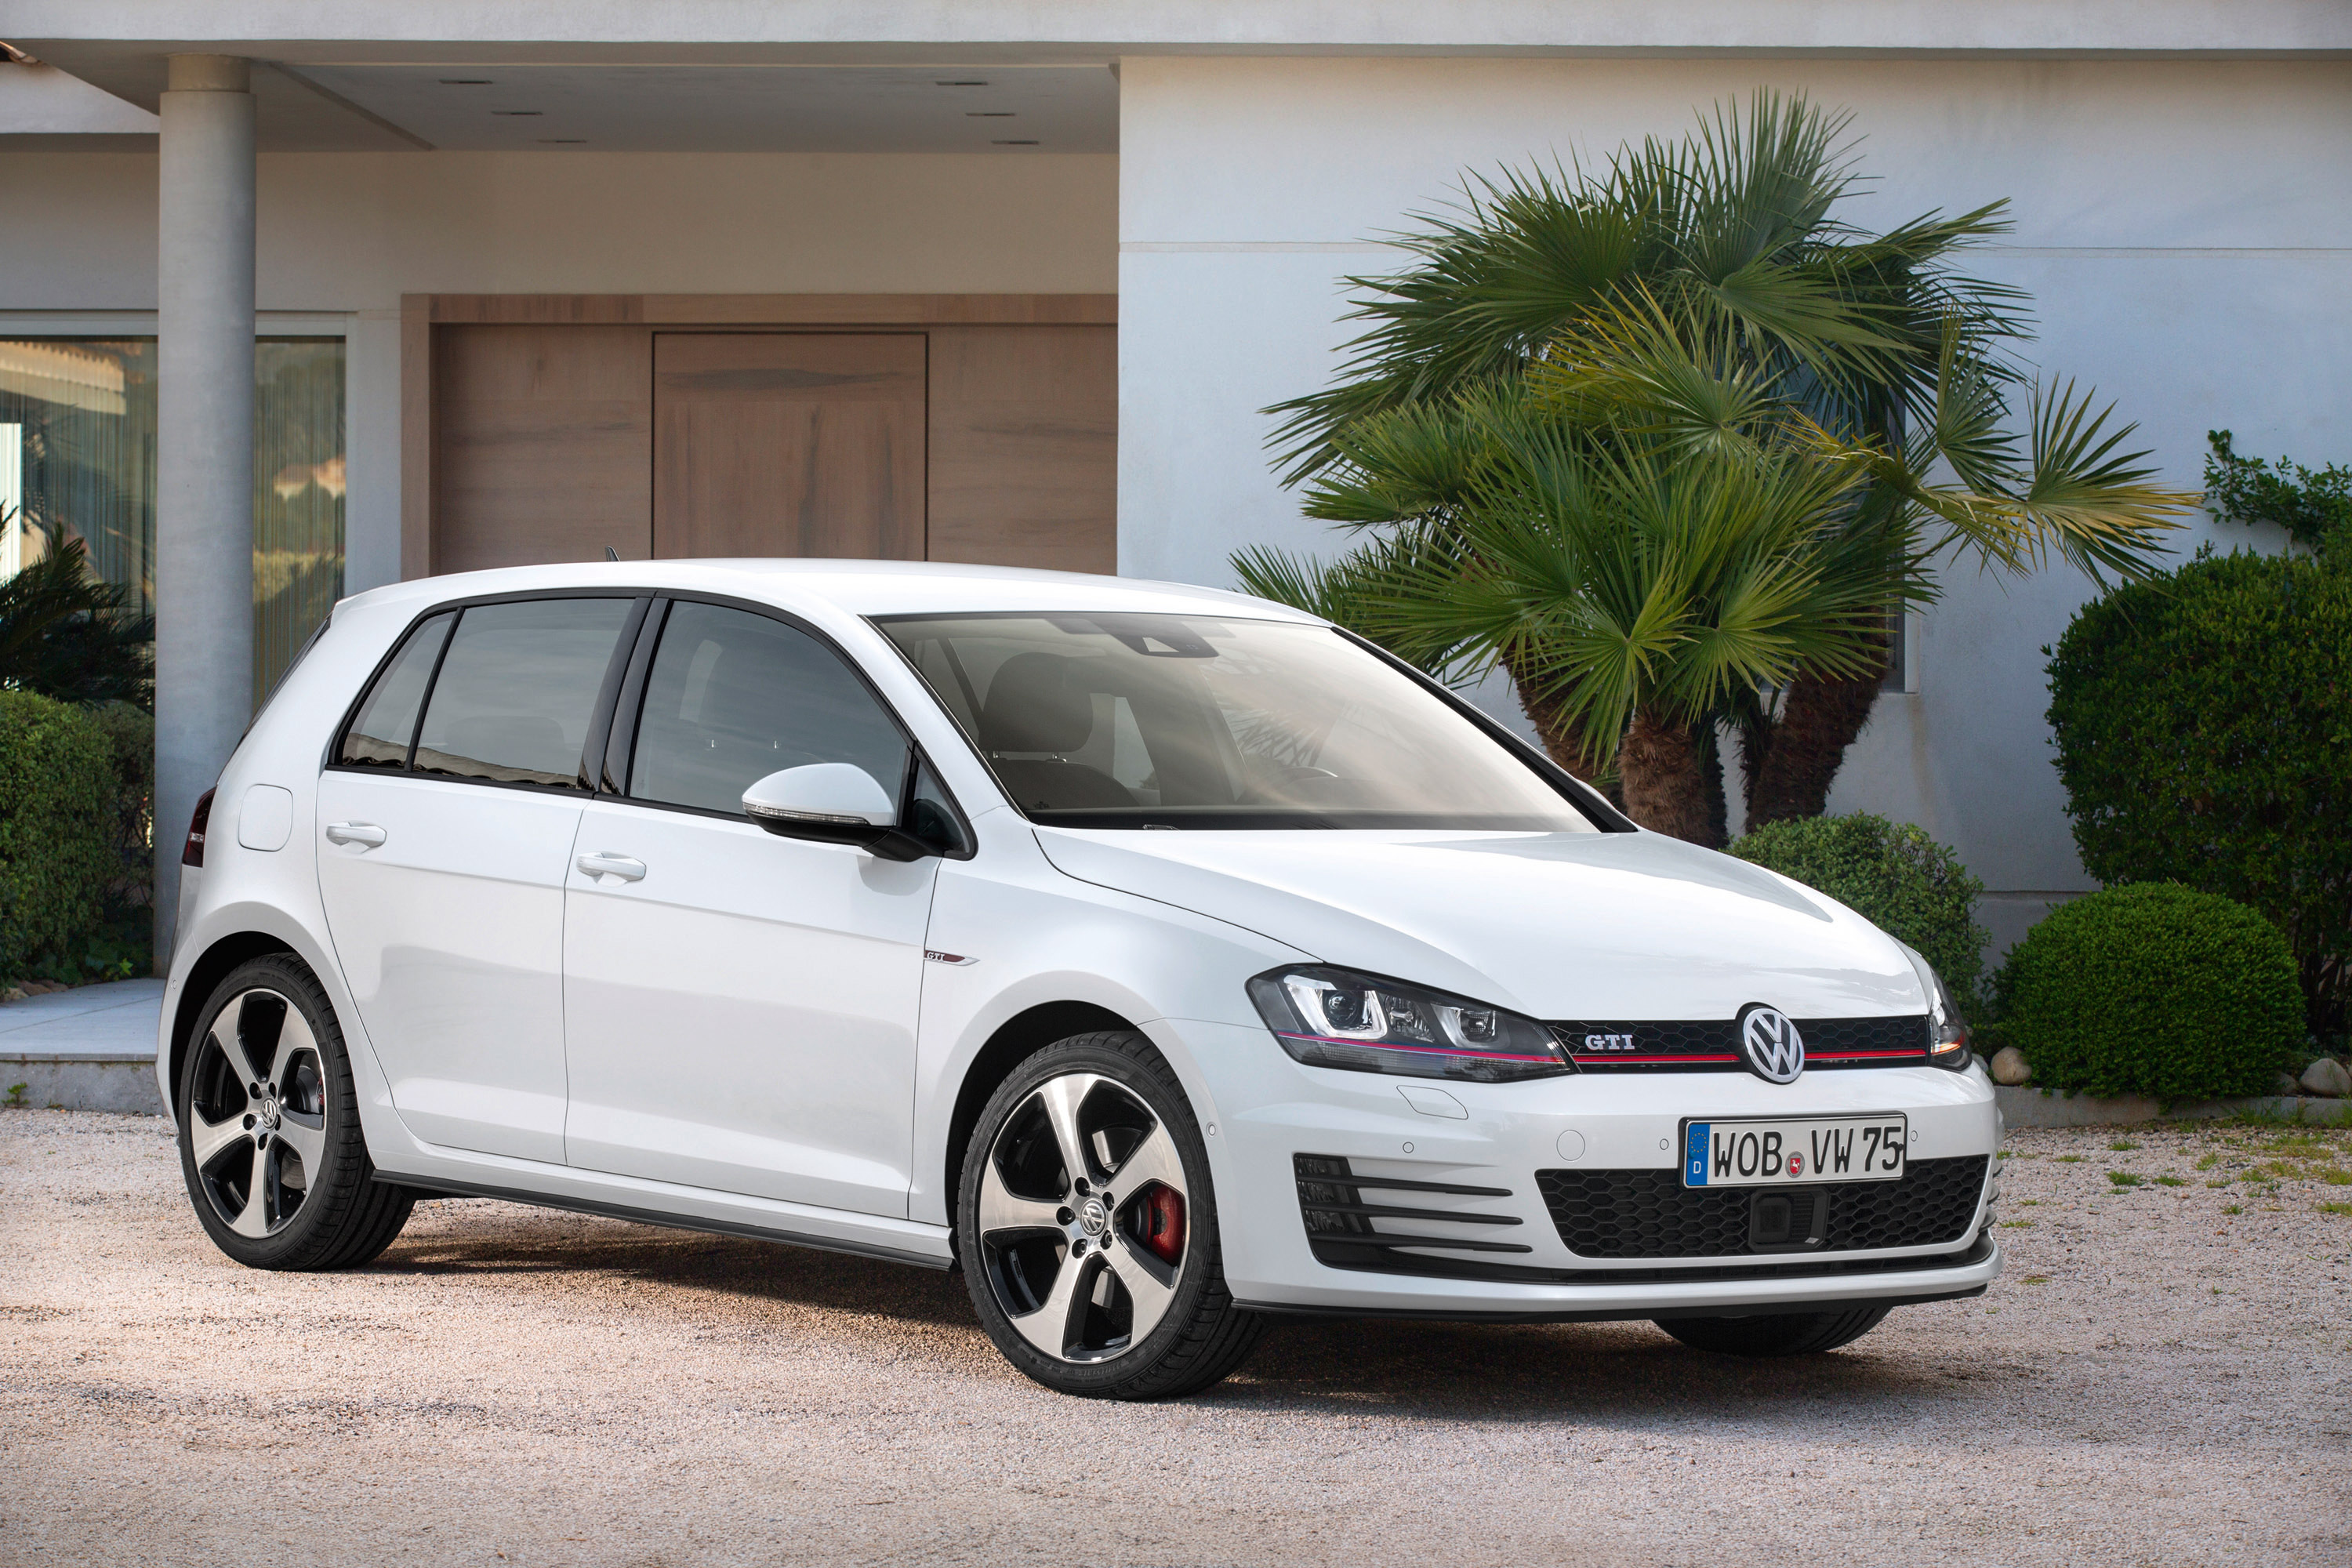 2014 Volkswagen Golf GTI - Picture 84763